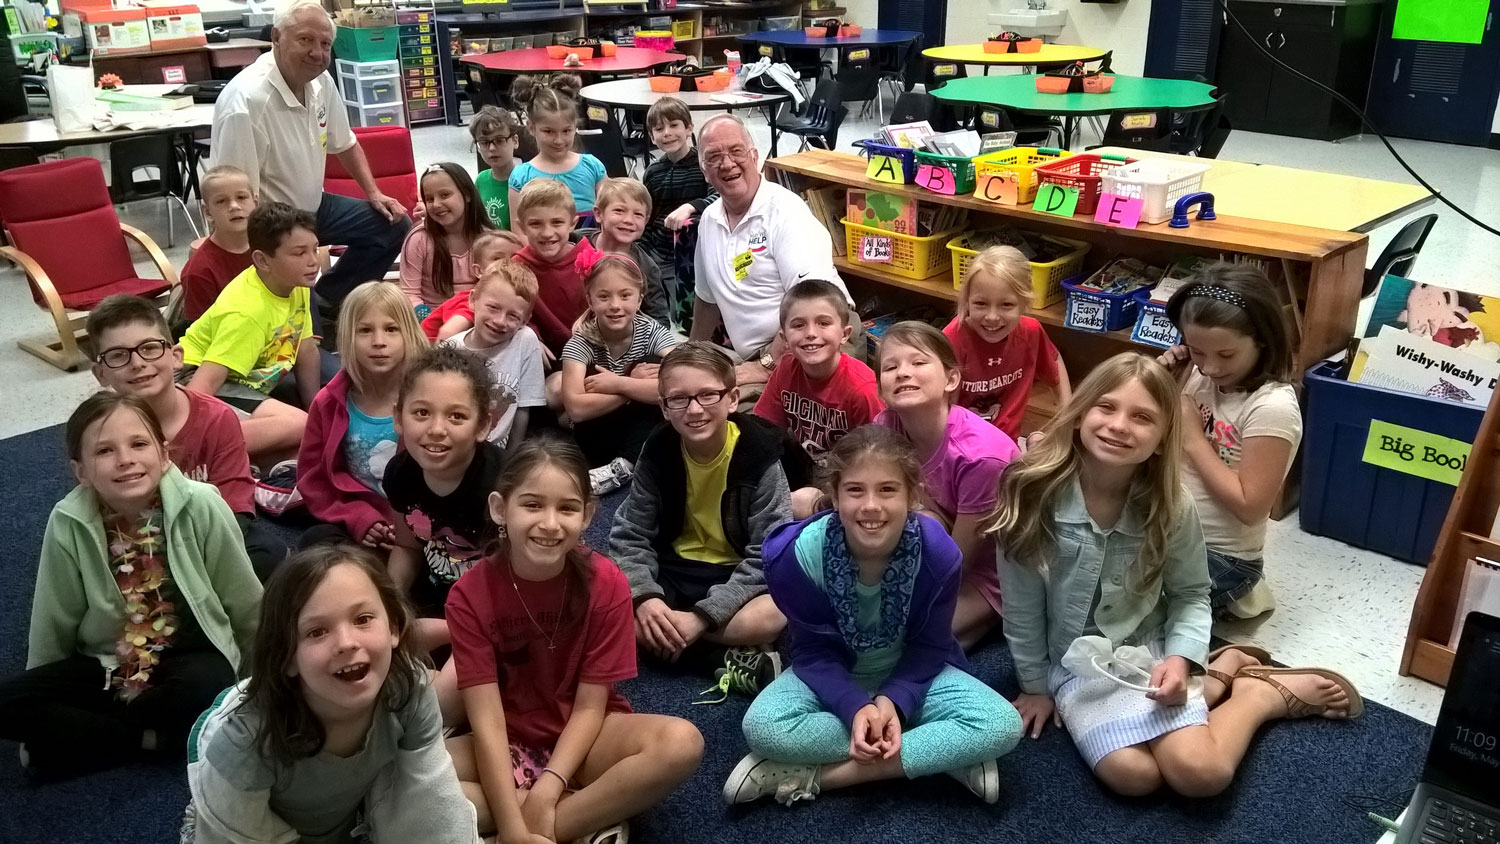 Dulles Elementary School Enrichment Day